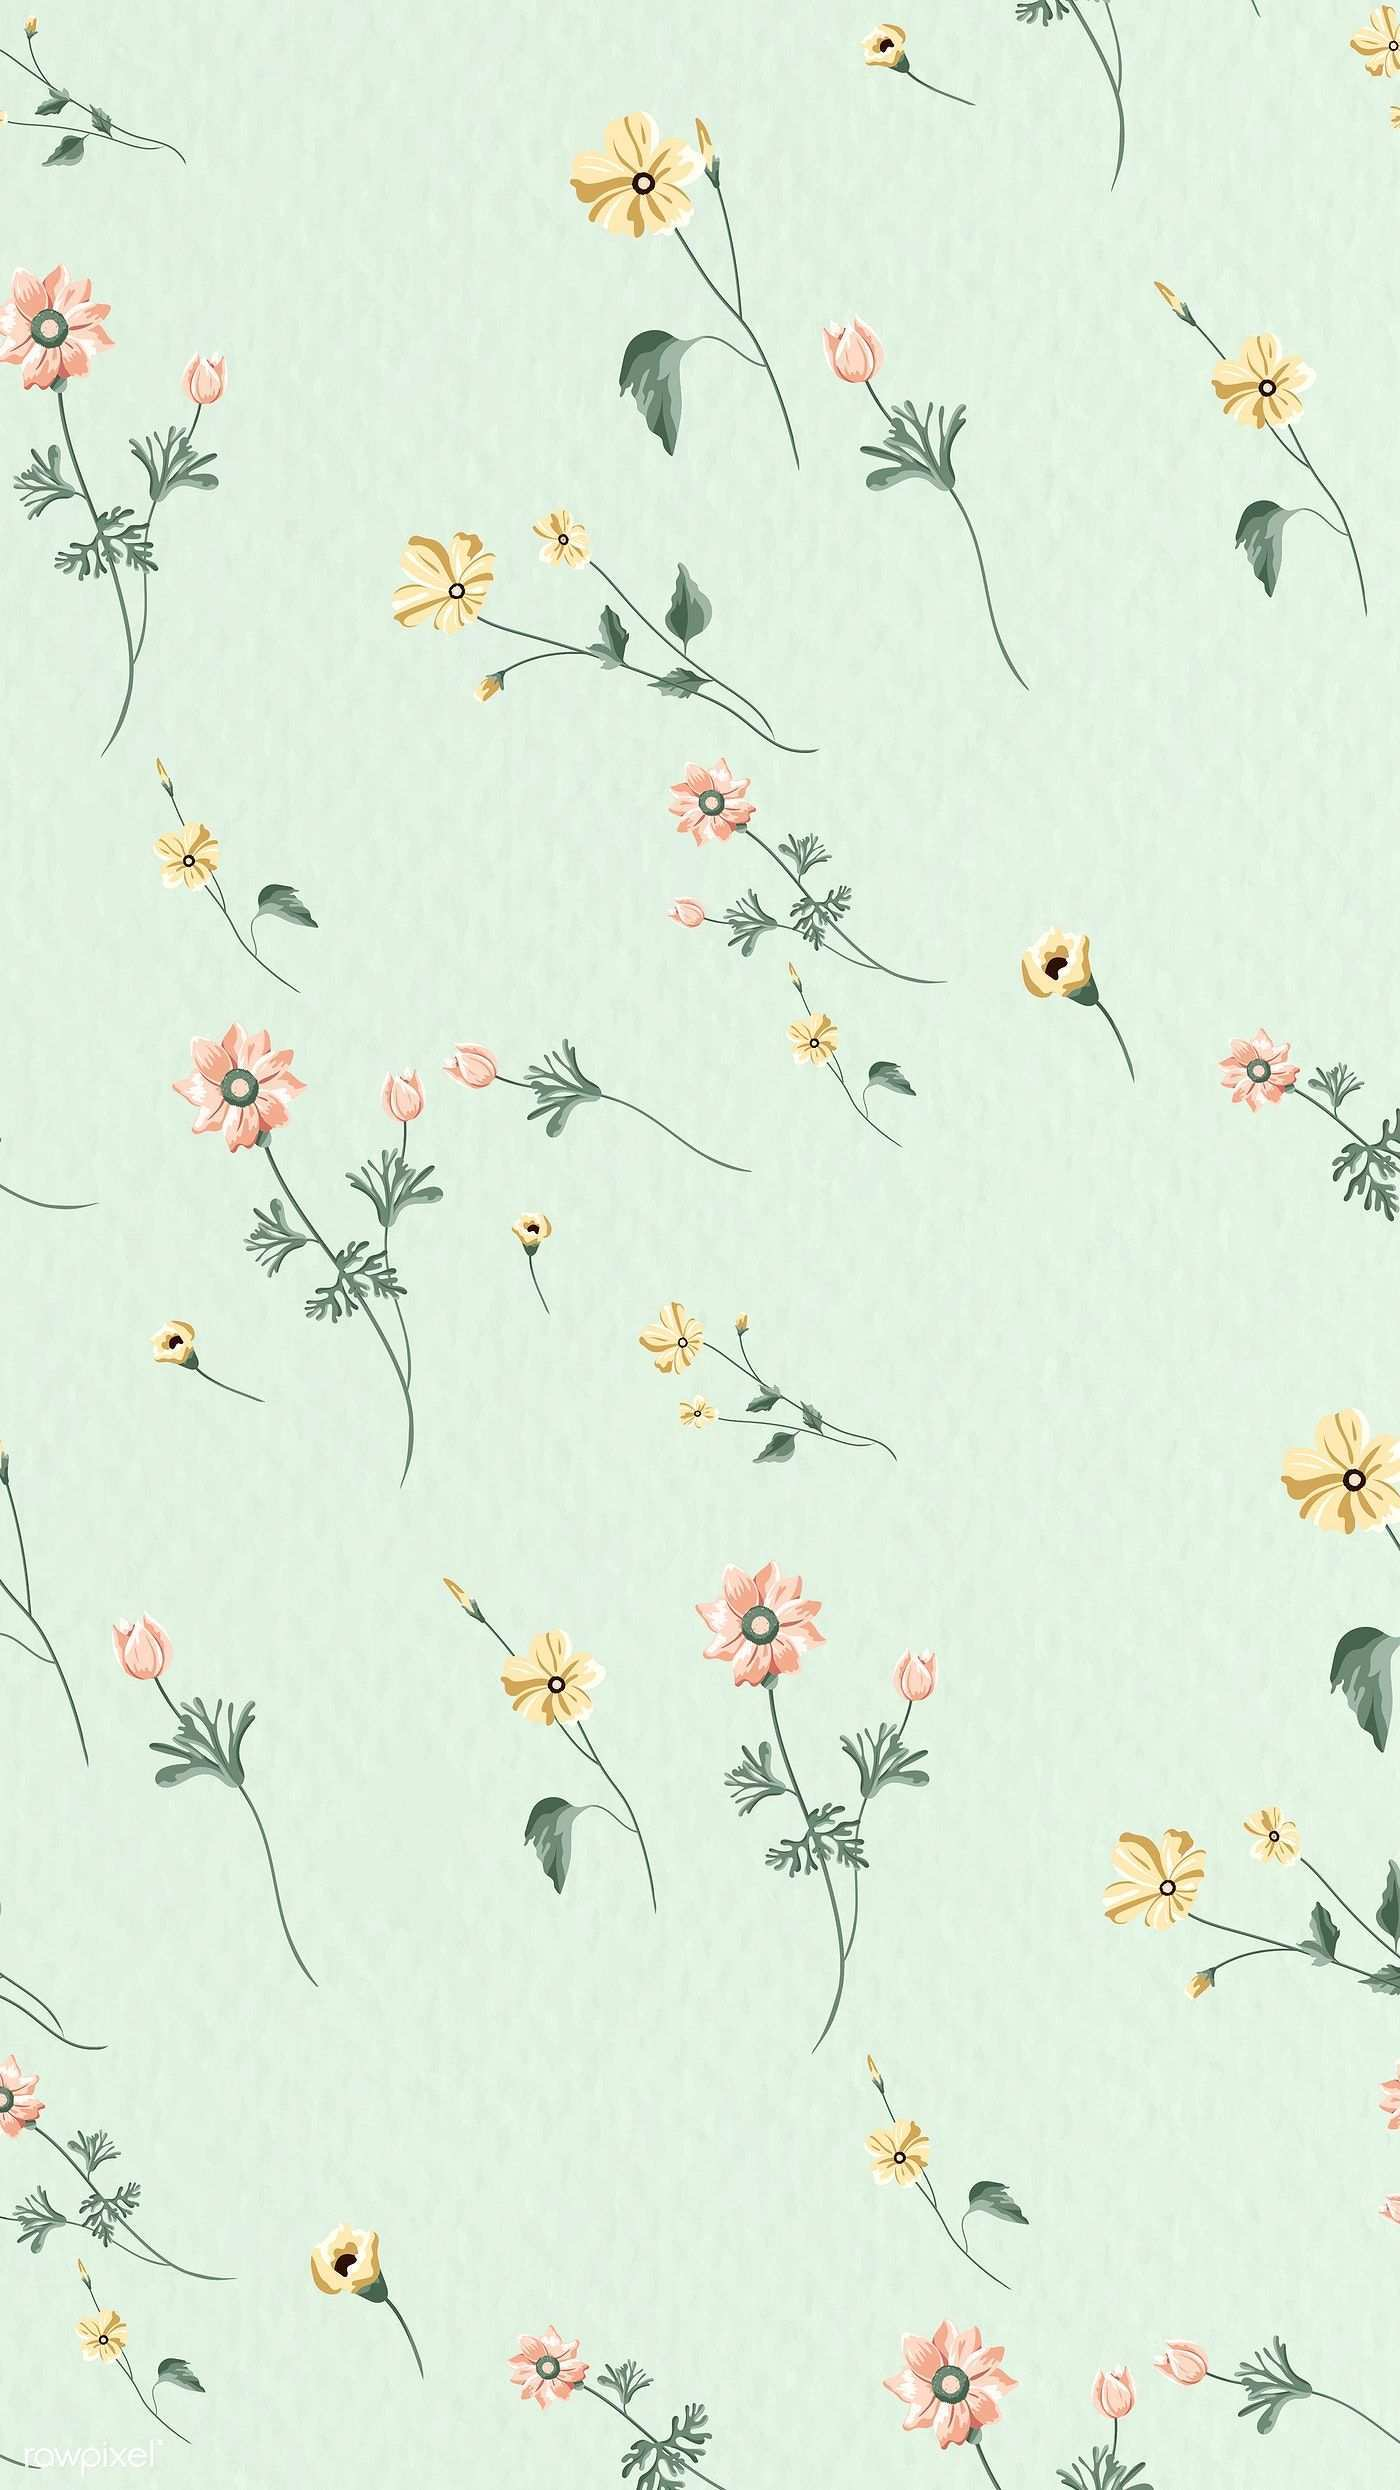 Download Premium Vector Of Blooming Flower Seamless Pattern On A Green Vintage Flowers Wallpaper Pastel Background Wallpapers Mint Green Wallpaper Iphone